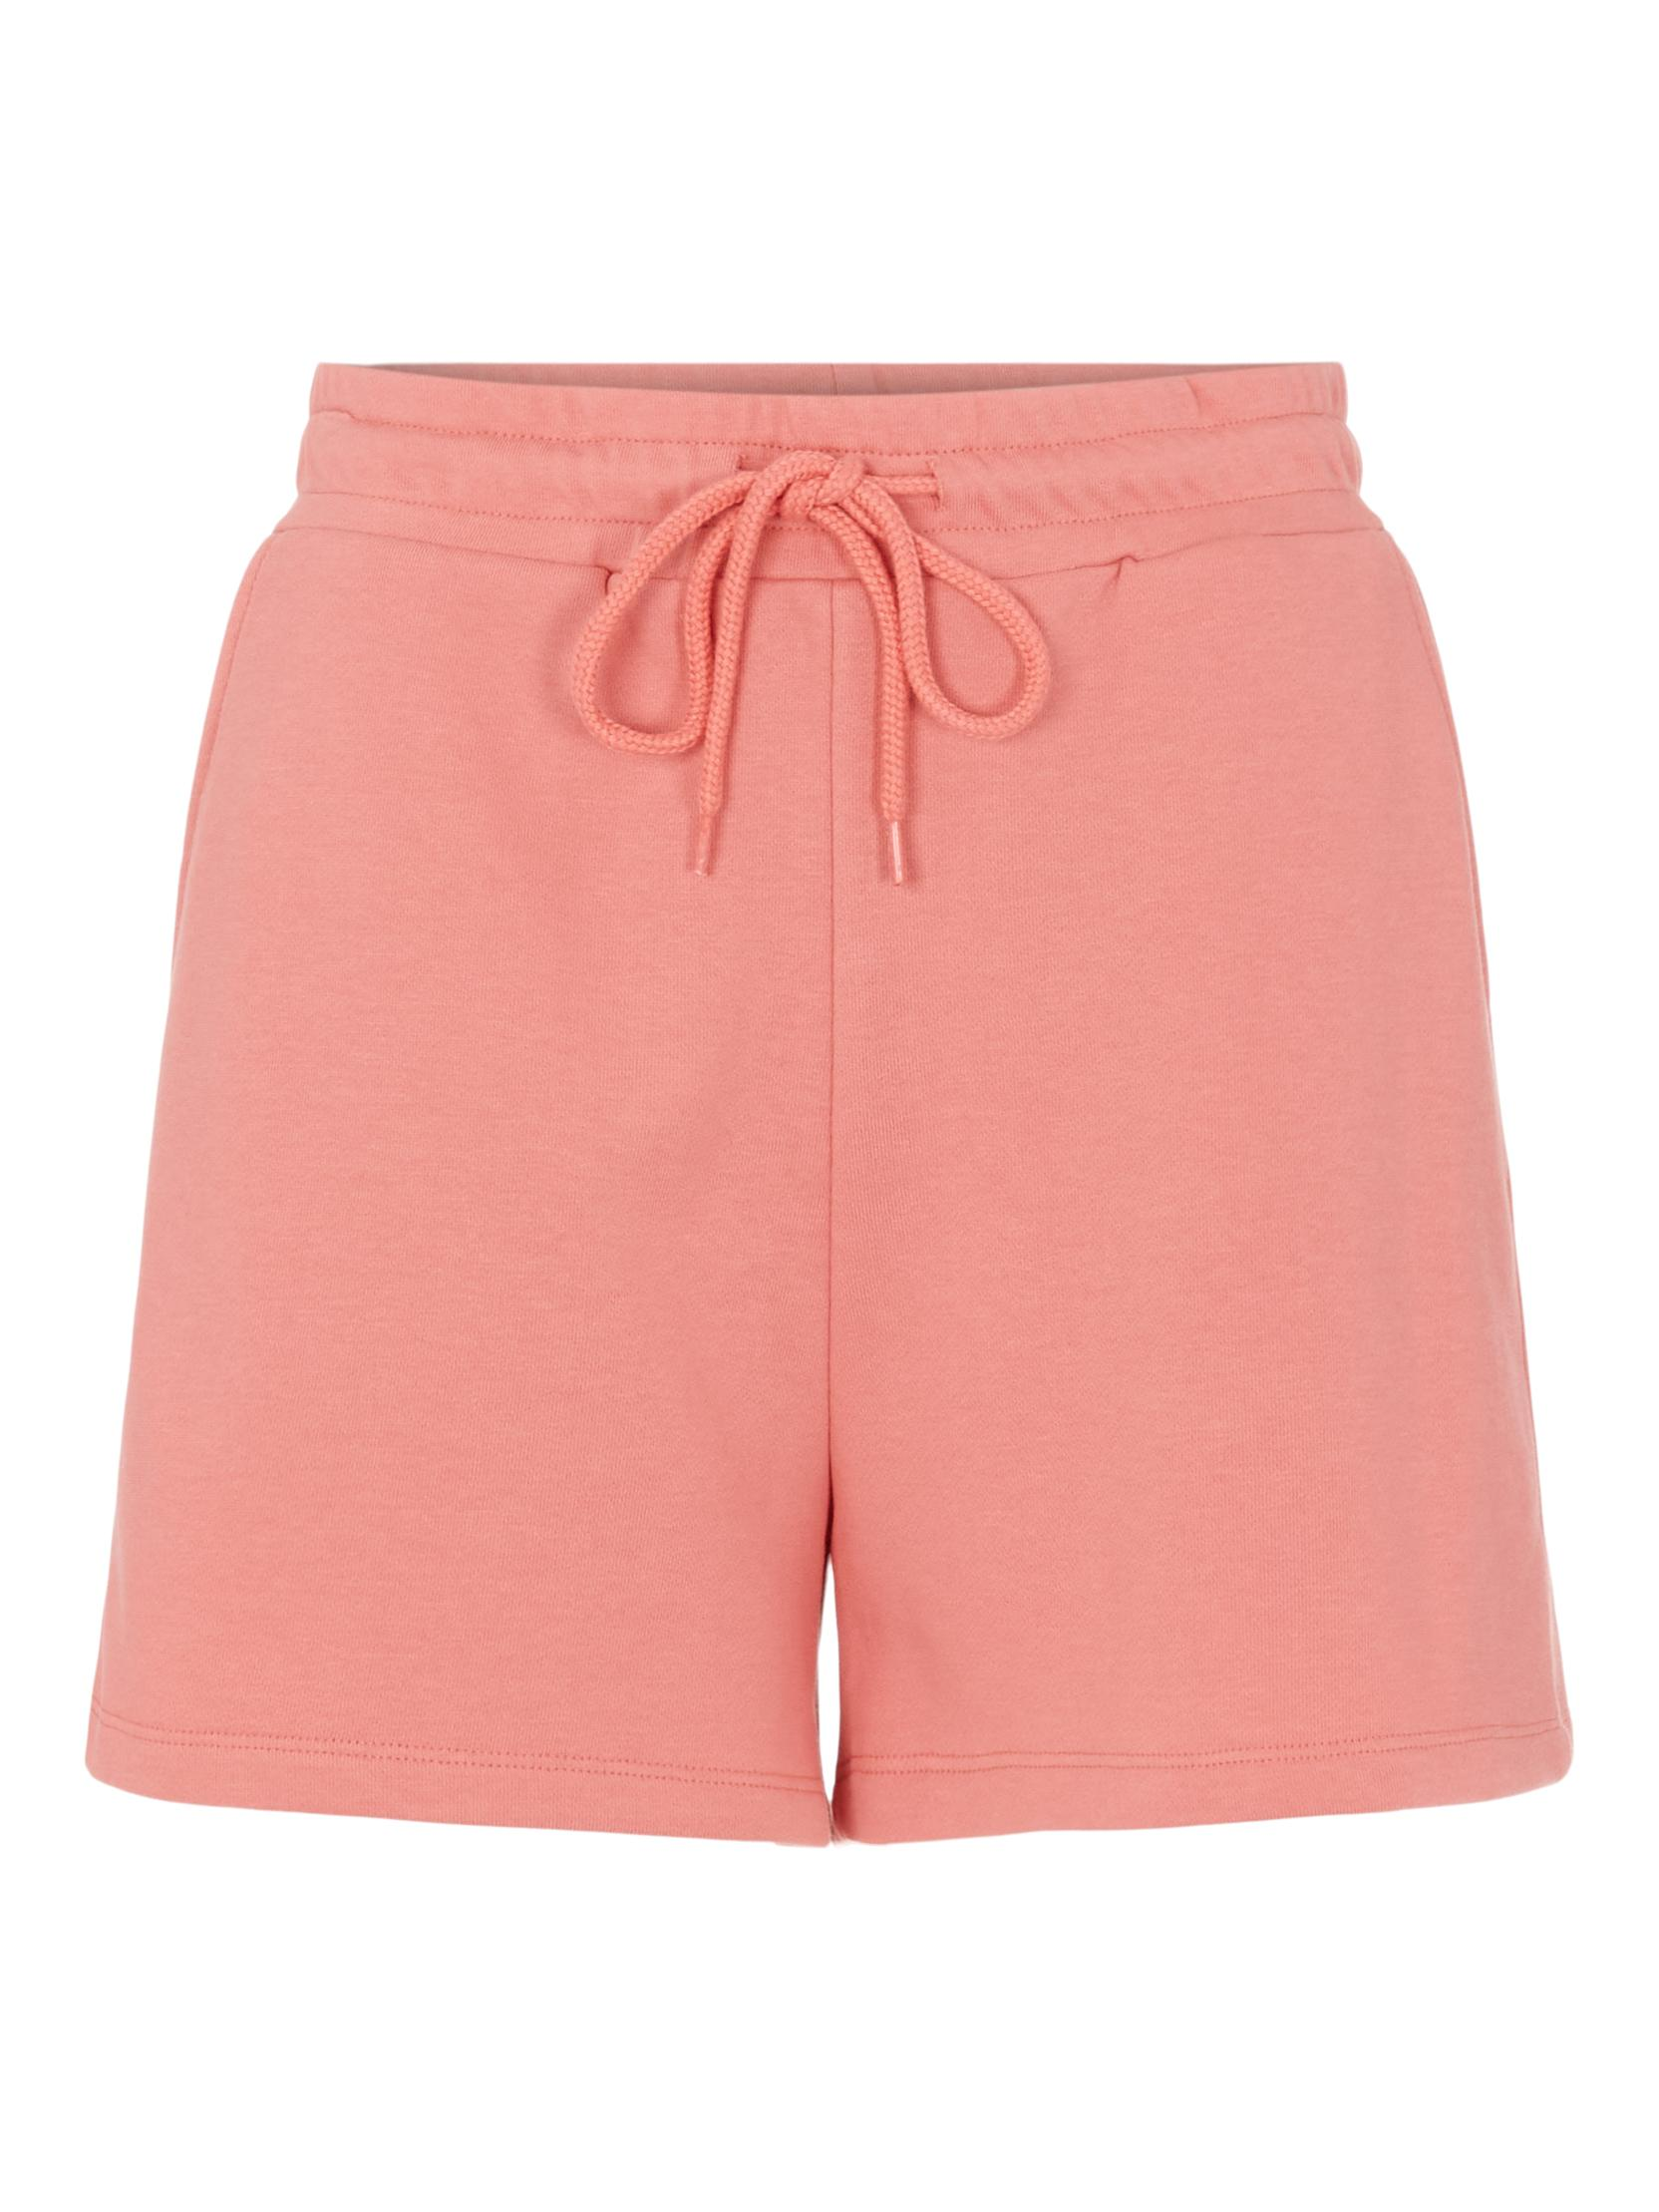 Pieces Chilli Summer shorts, tea rose, small